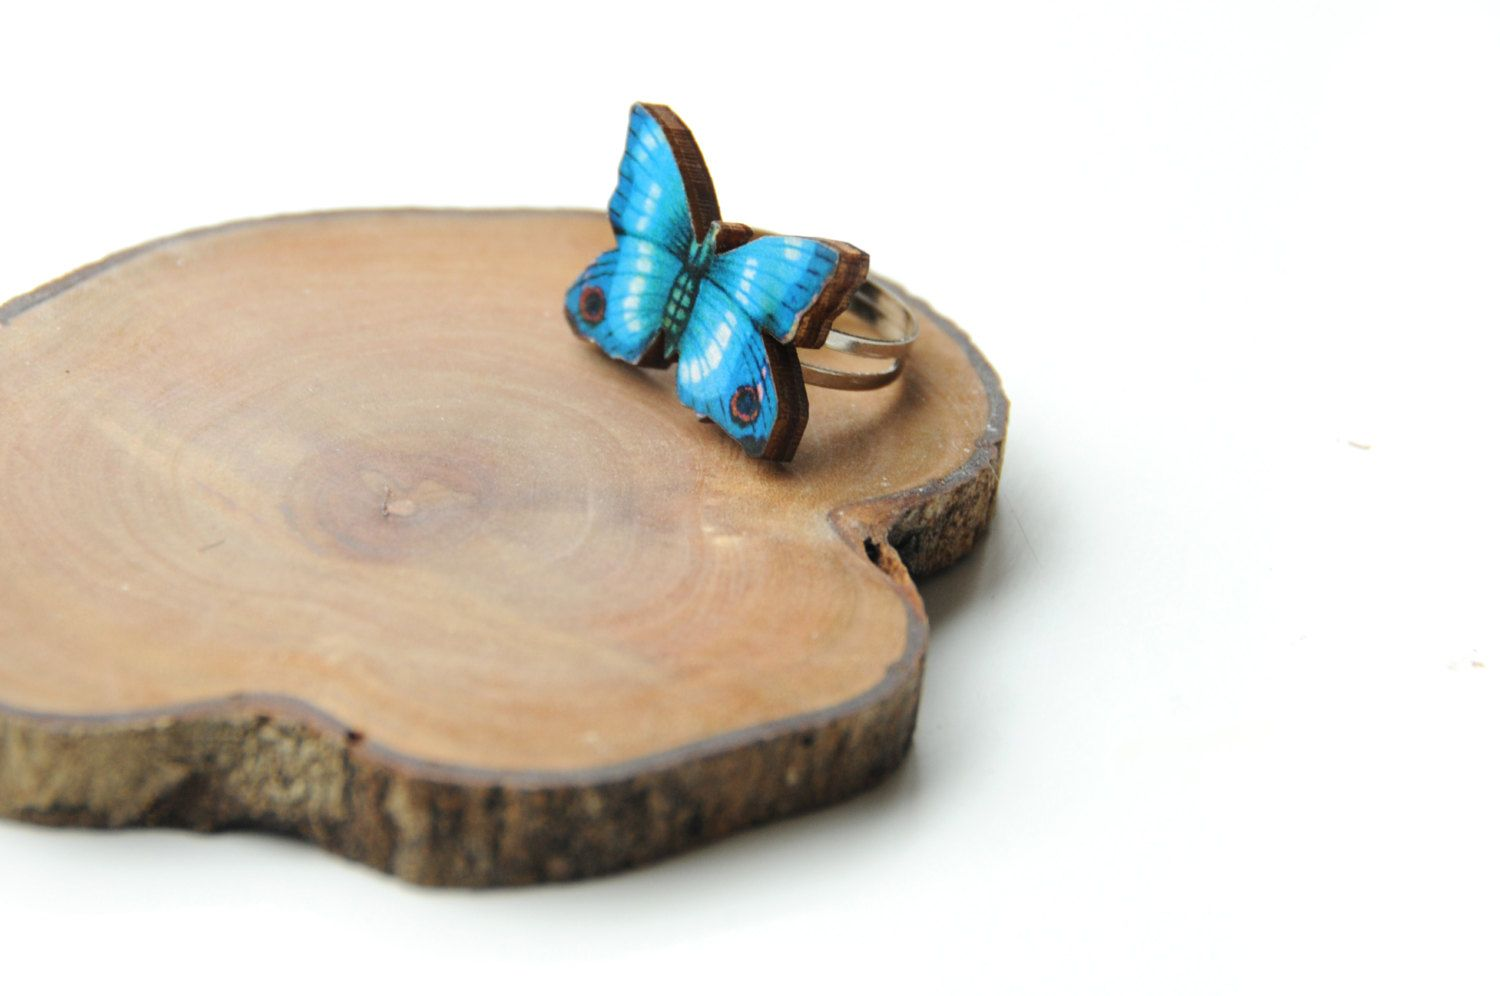 Wooden Ring - Butterfly ring - Laser cut ring - wood ring - gift for her - adjustable ring. €13.00, via Etsy.